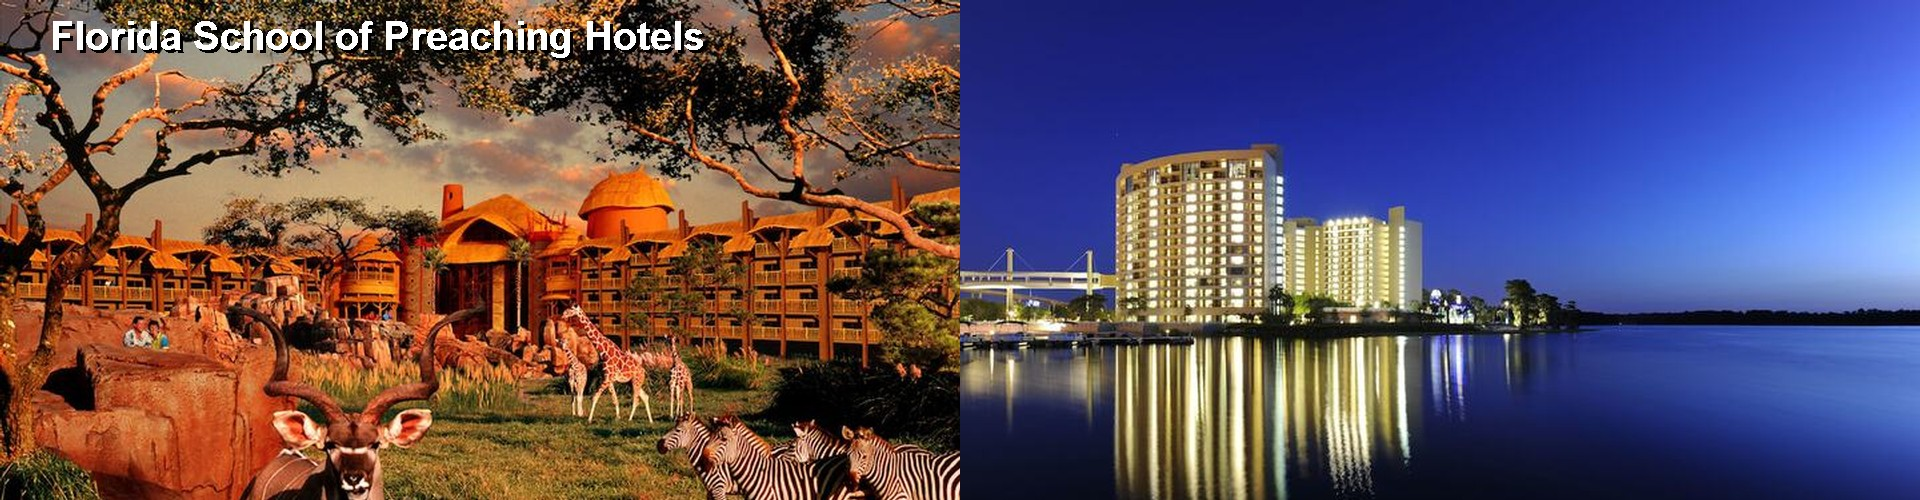 5 Best Hotels near Florida School of Preaching